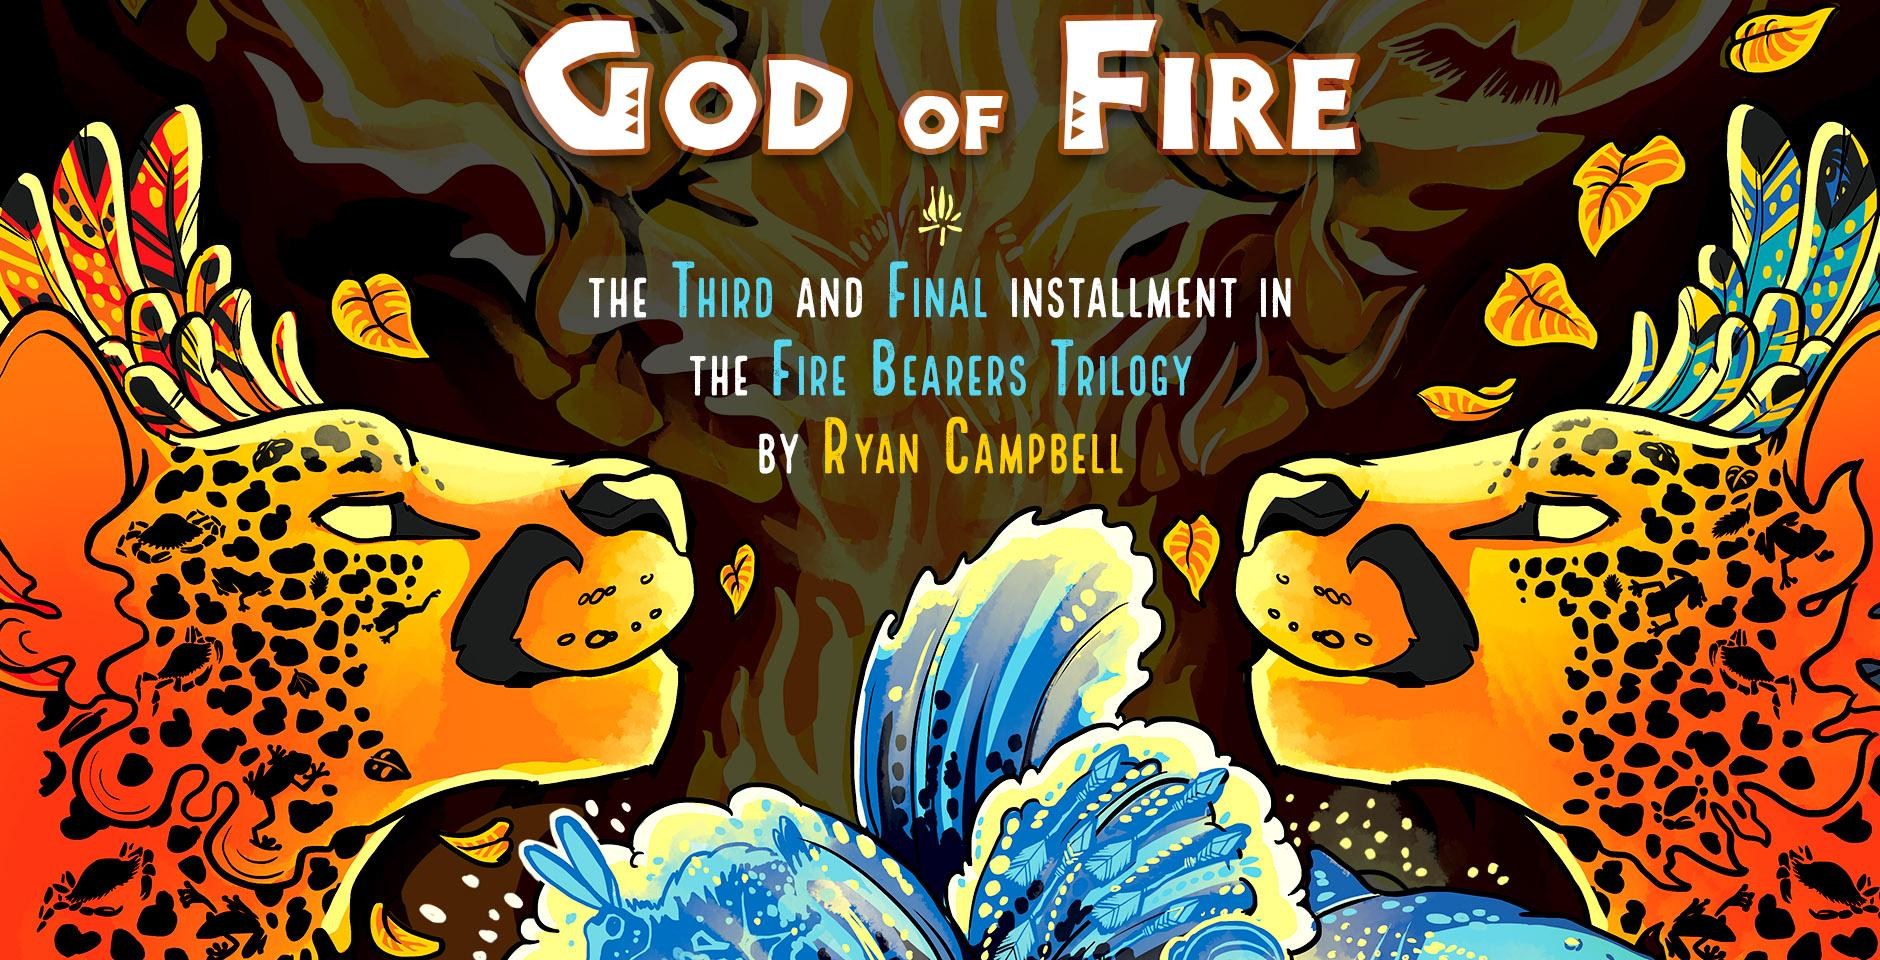 God of Fire, the third and final installment in the Fire Bearers trilogy by Ryan Campbell